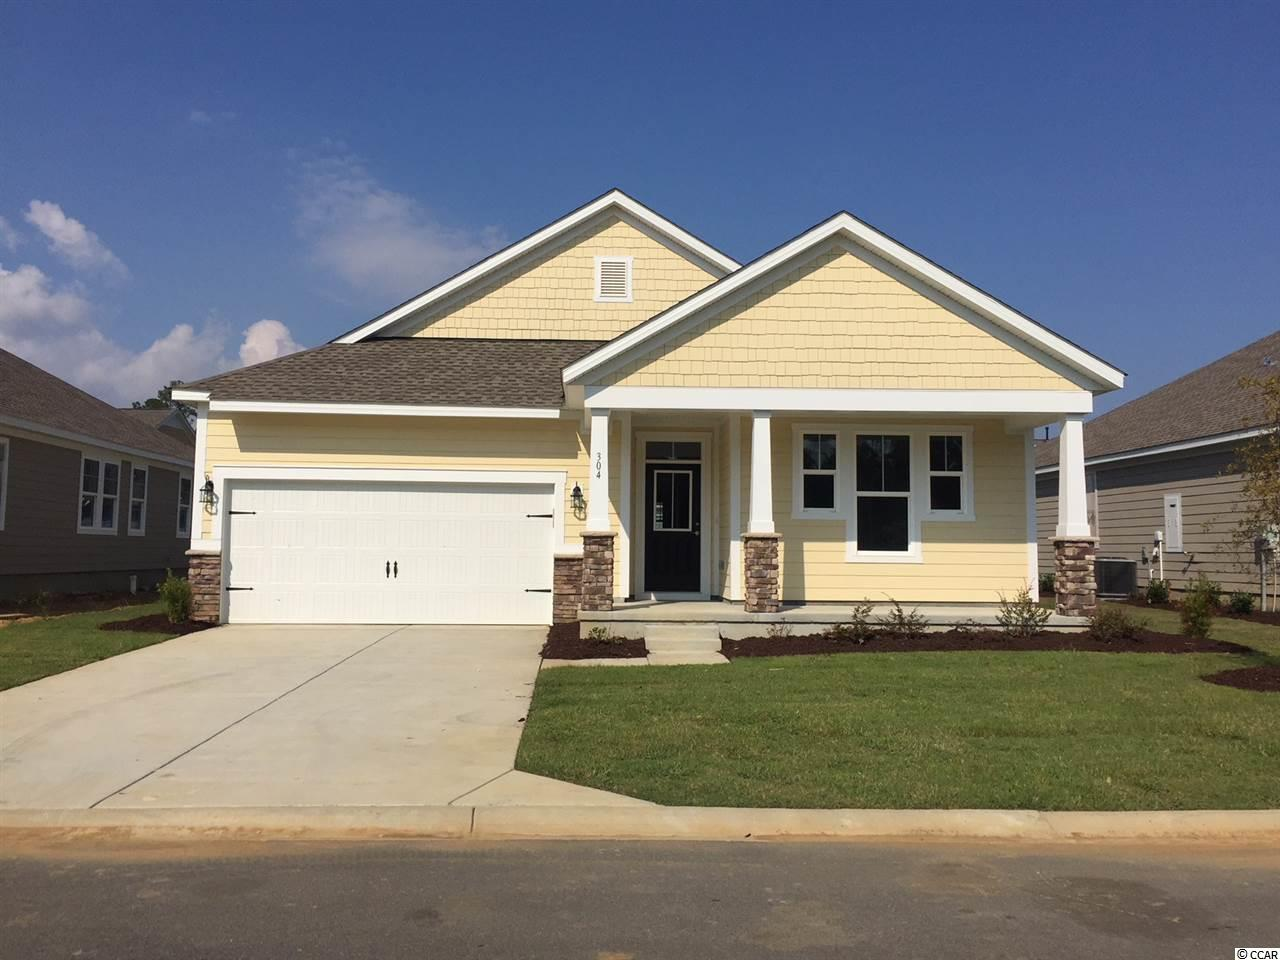 Lot 28 Scottsdale Court, Murrells Inlet, SC 29576